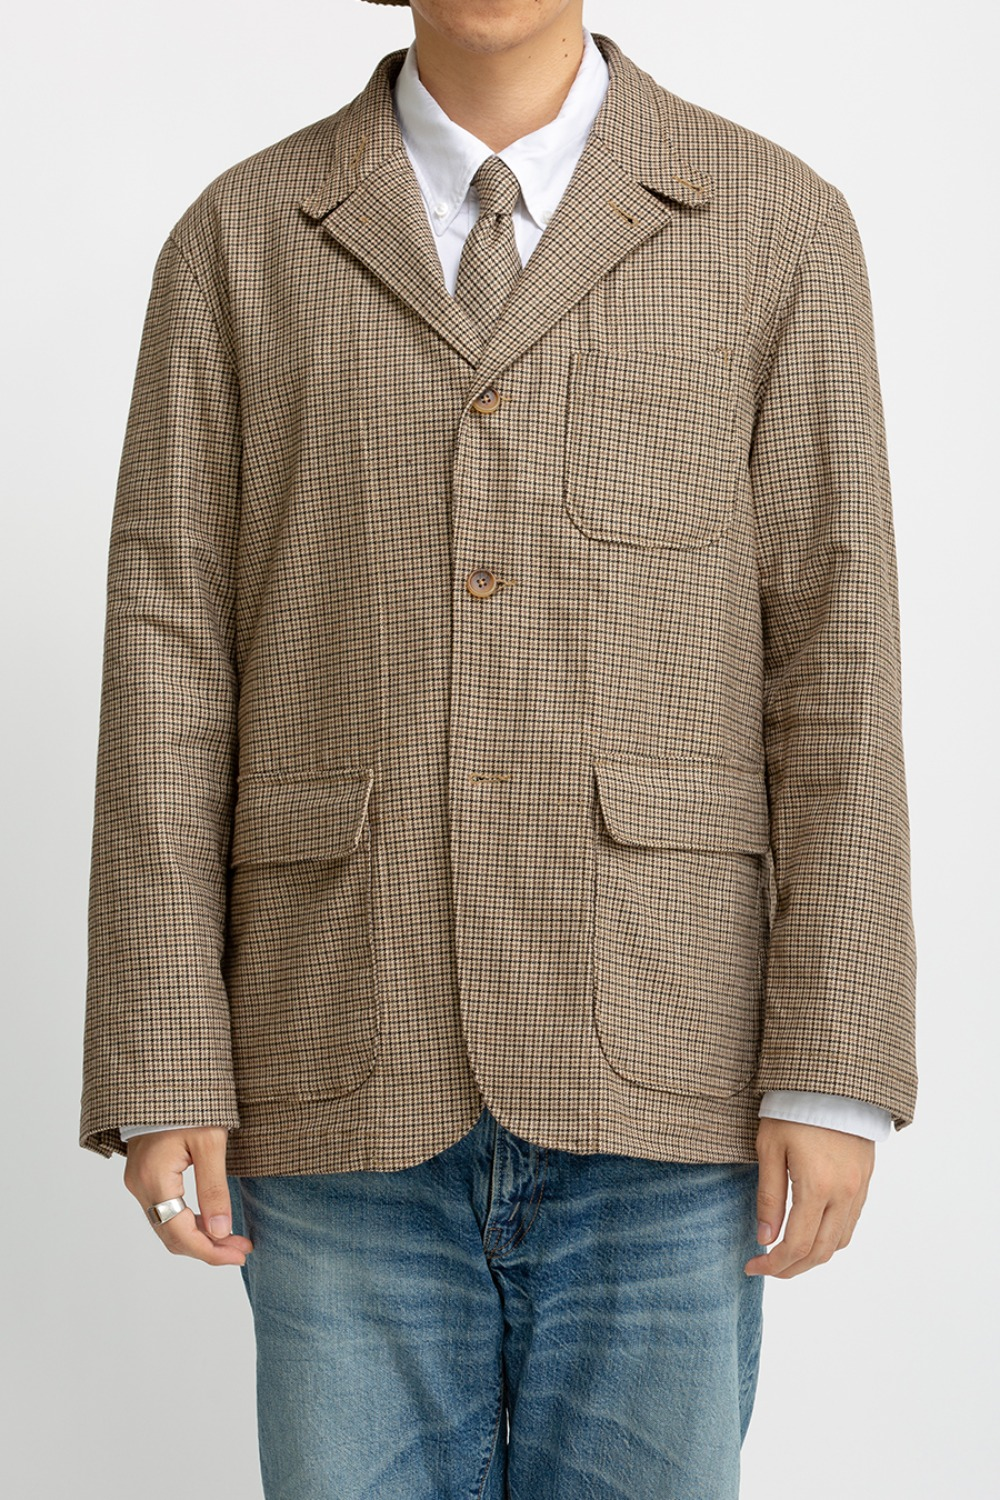 LOITER JACKET BROWN WOOL POLY GUNCLUB